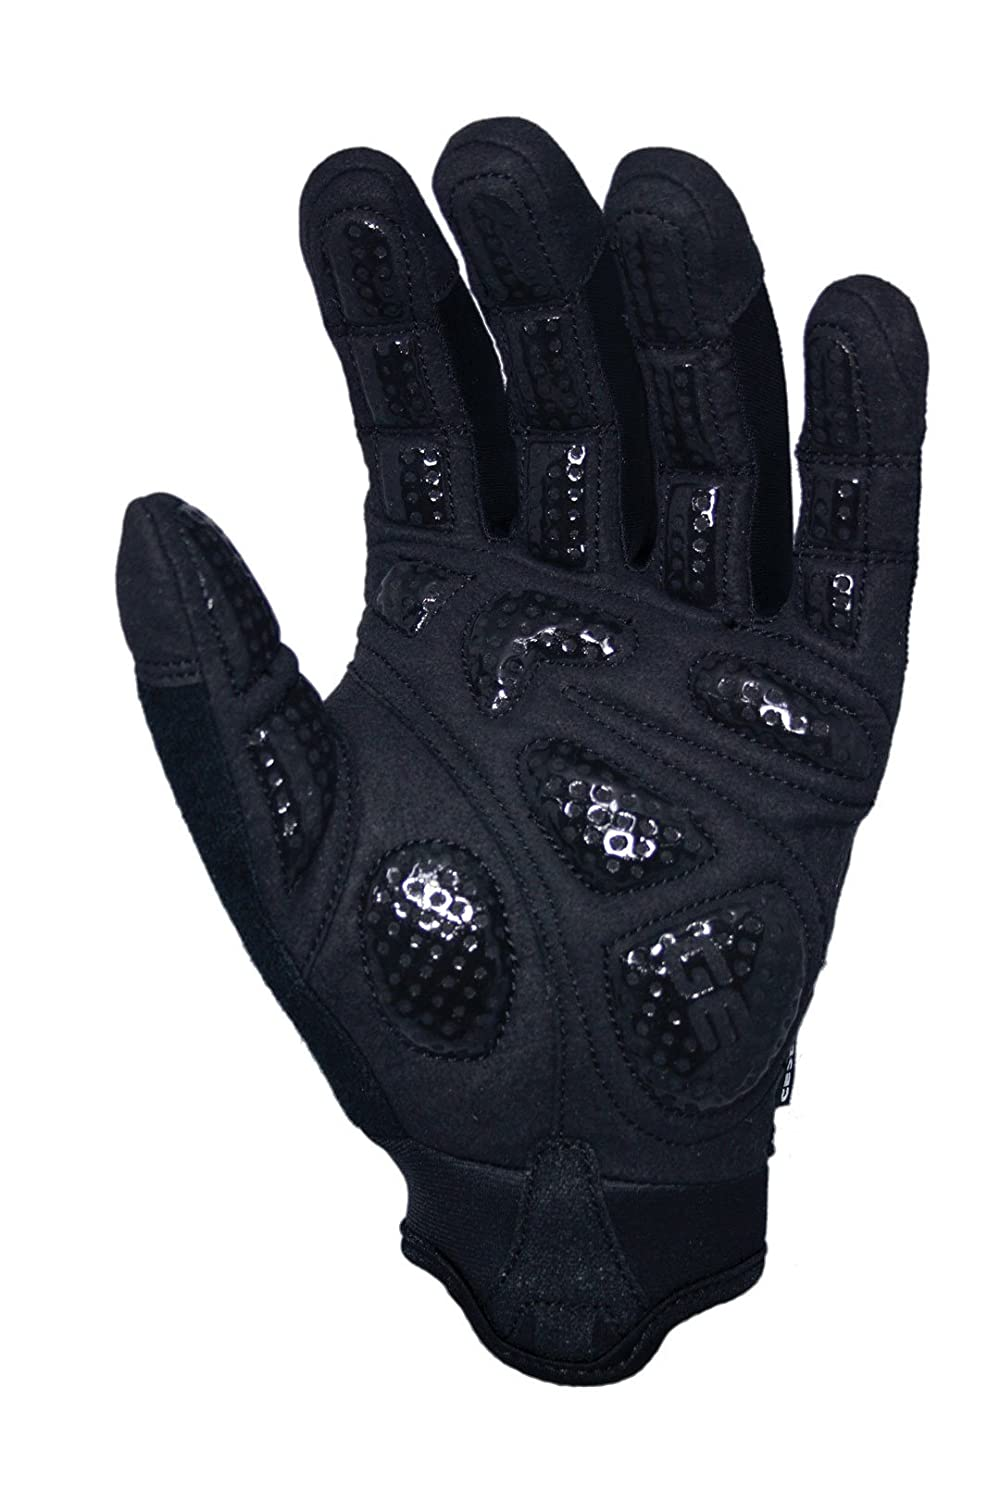 nero 2/ x -large work confezione da 1/ paio Cestus Tremblex bk-2011/ 2/ x L Vibration Series neoprene Polychloroprene anti-vibration Glove